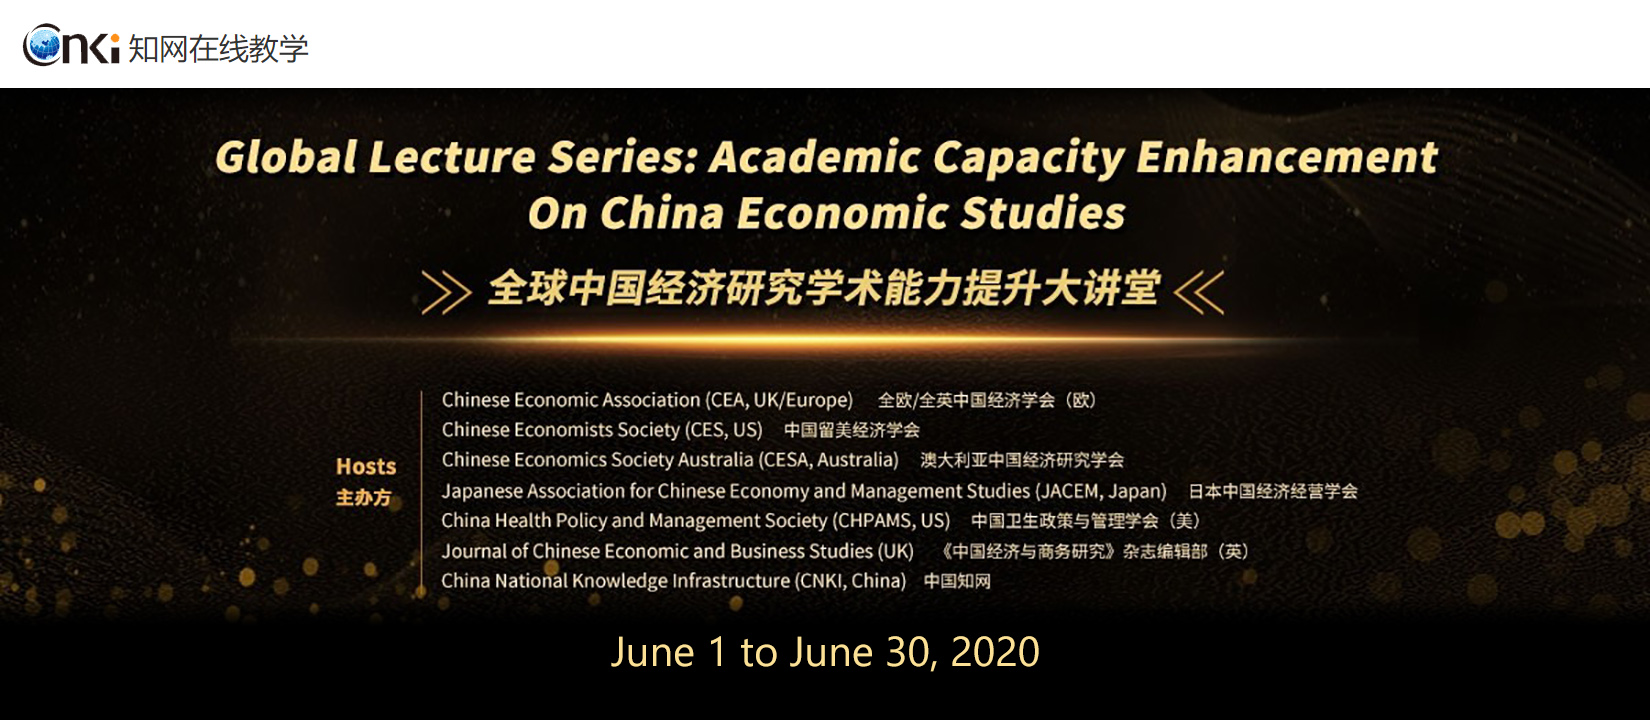 Global Lecture Series: Academic Capacity Enhancement on Chinese Economic Studies